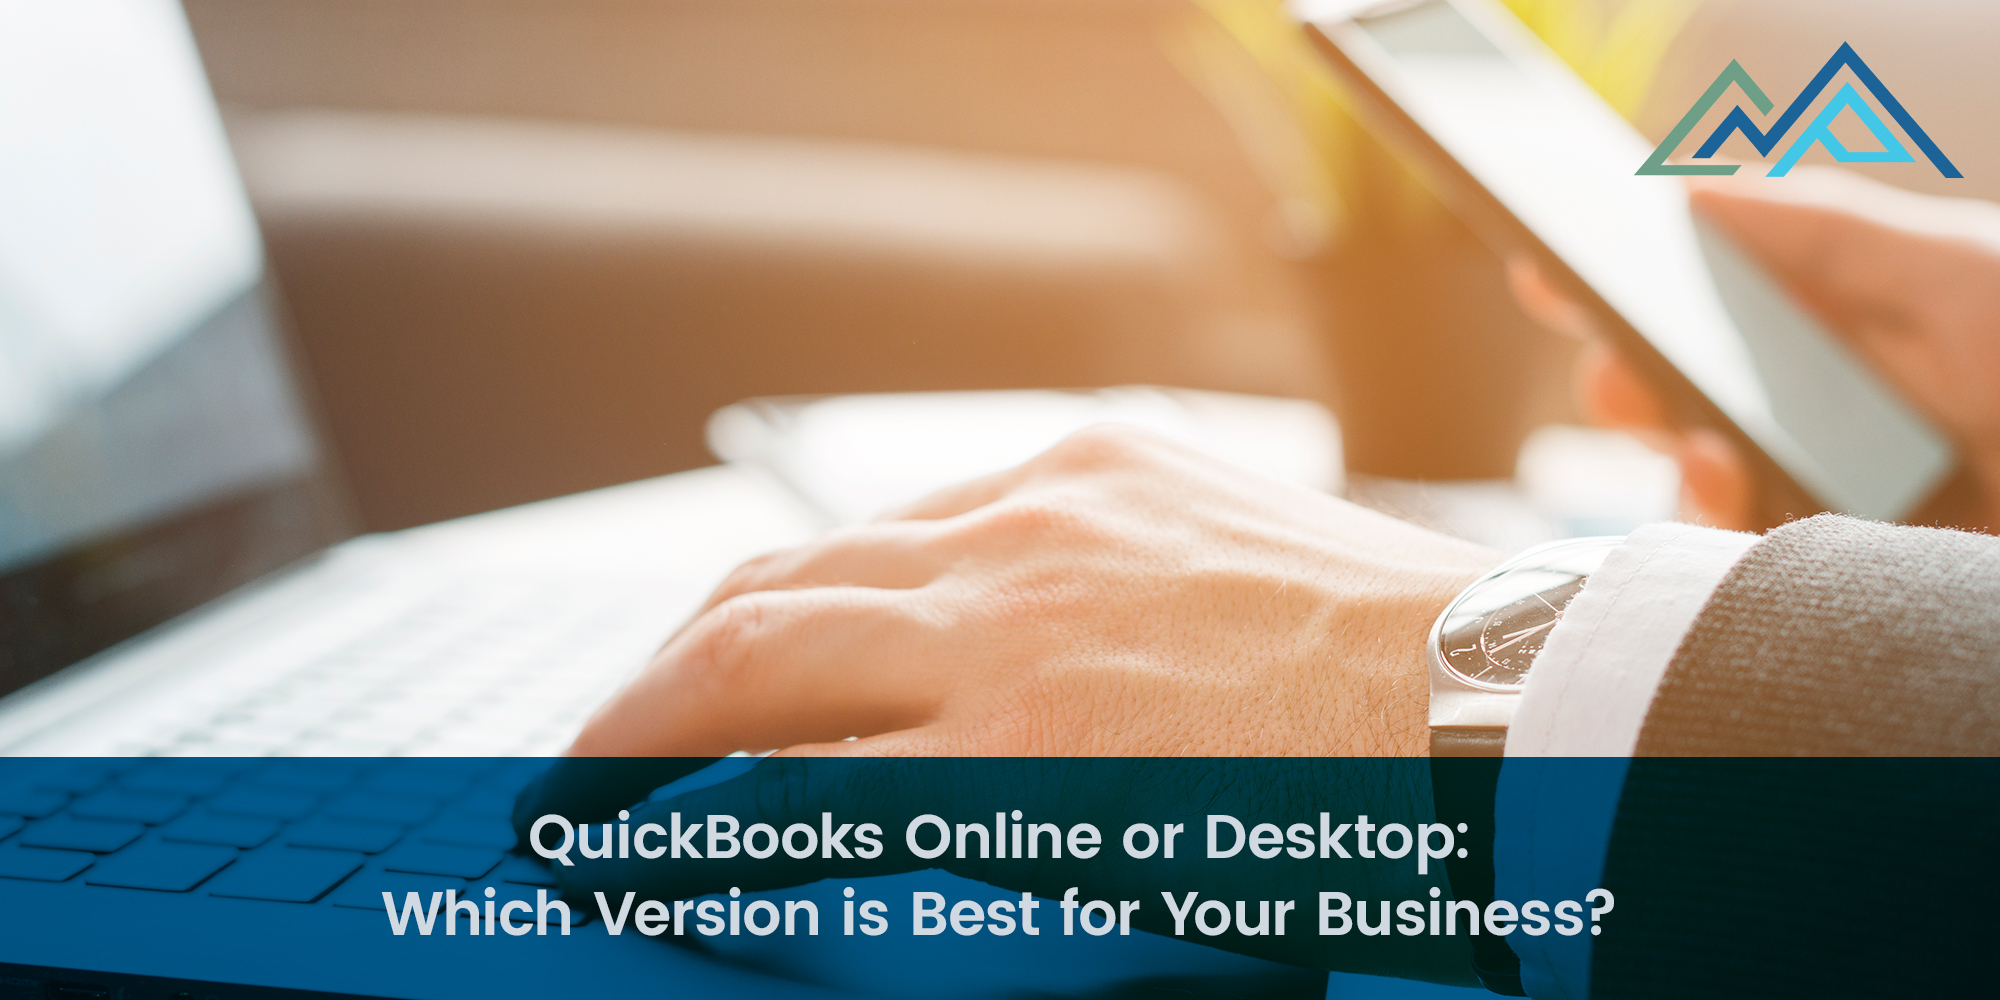 QuickBooks Online or Desktop Which Version is Best for Your Business - 1 - Full